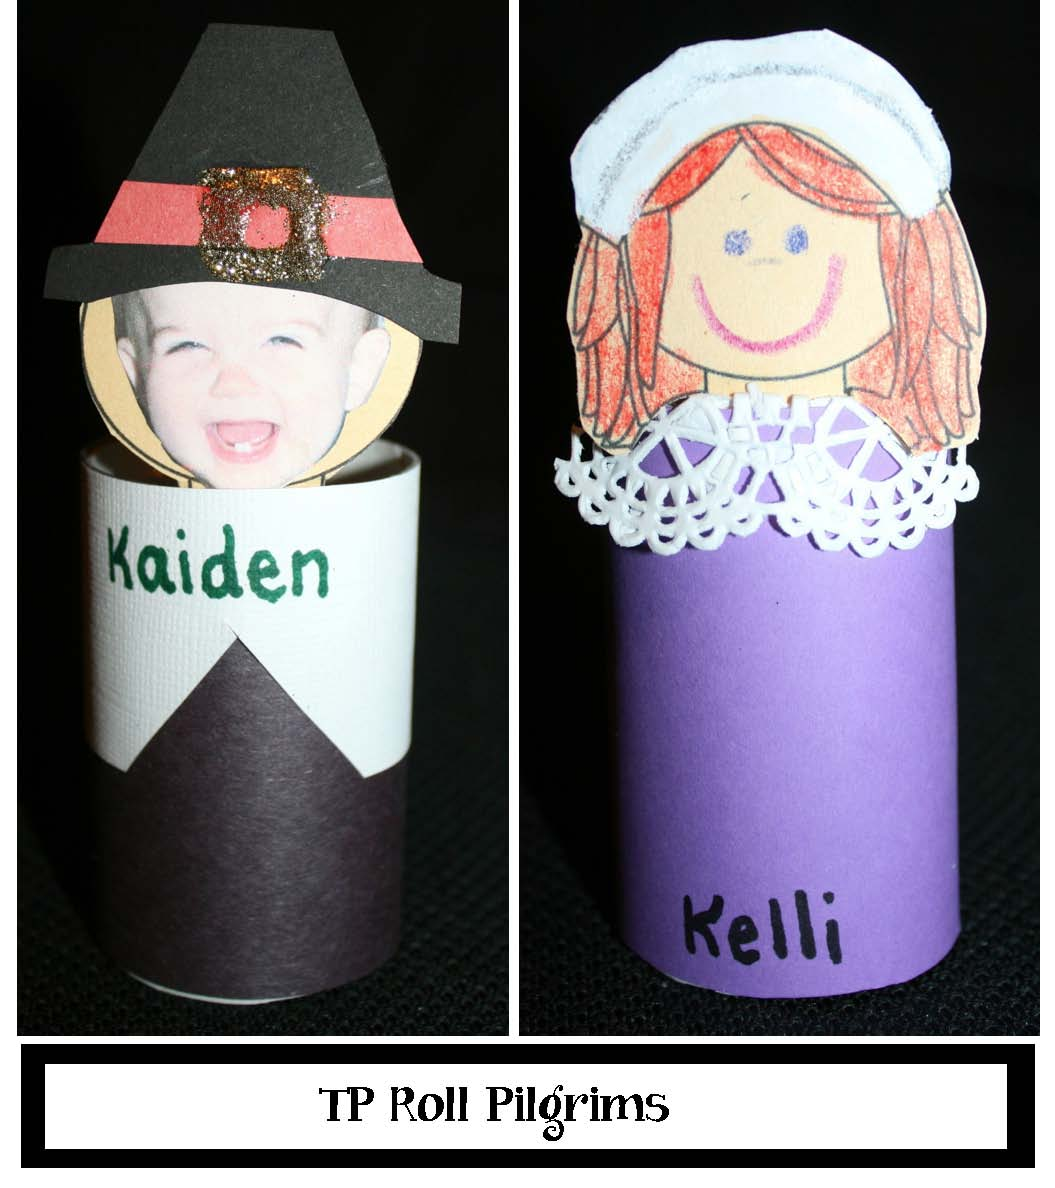 pilgrim children information, pilgrim children games, pilgrim children activities, thanksgiving crafts, thanksgiving games, thanksgiving activities, venn diagrams, graphic organizers, writing prompts for november, thanksgiving writing prompts